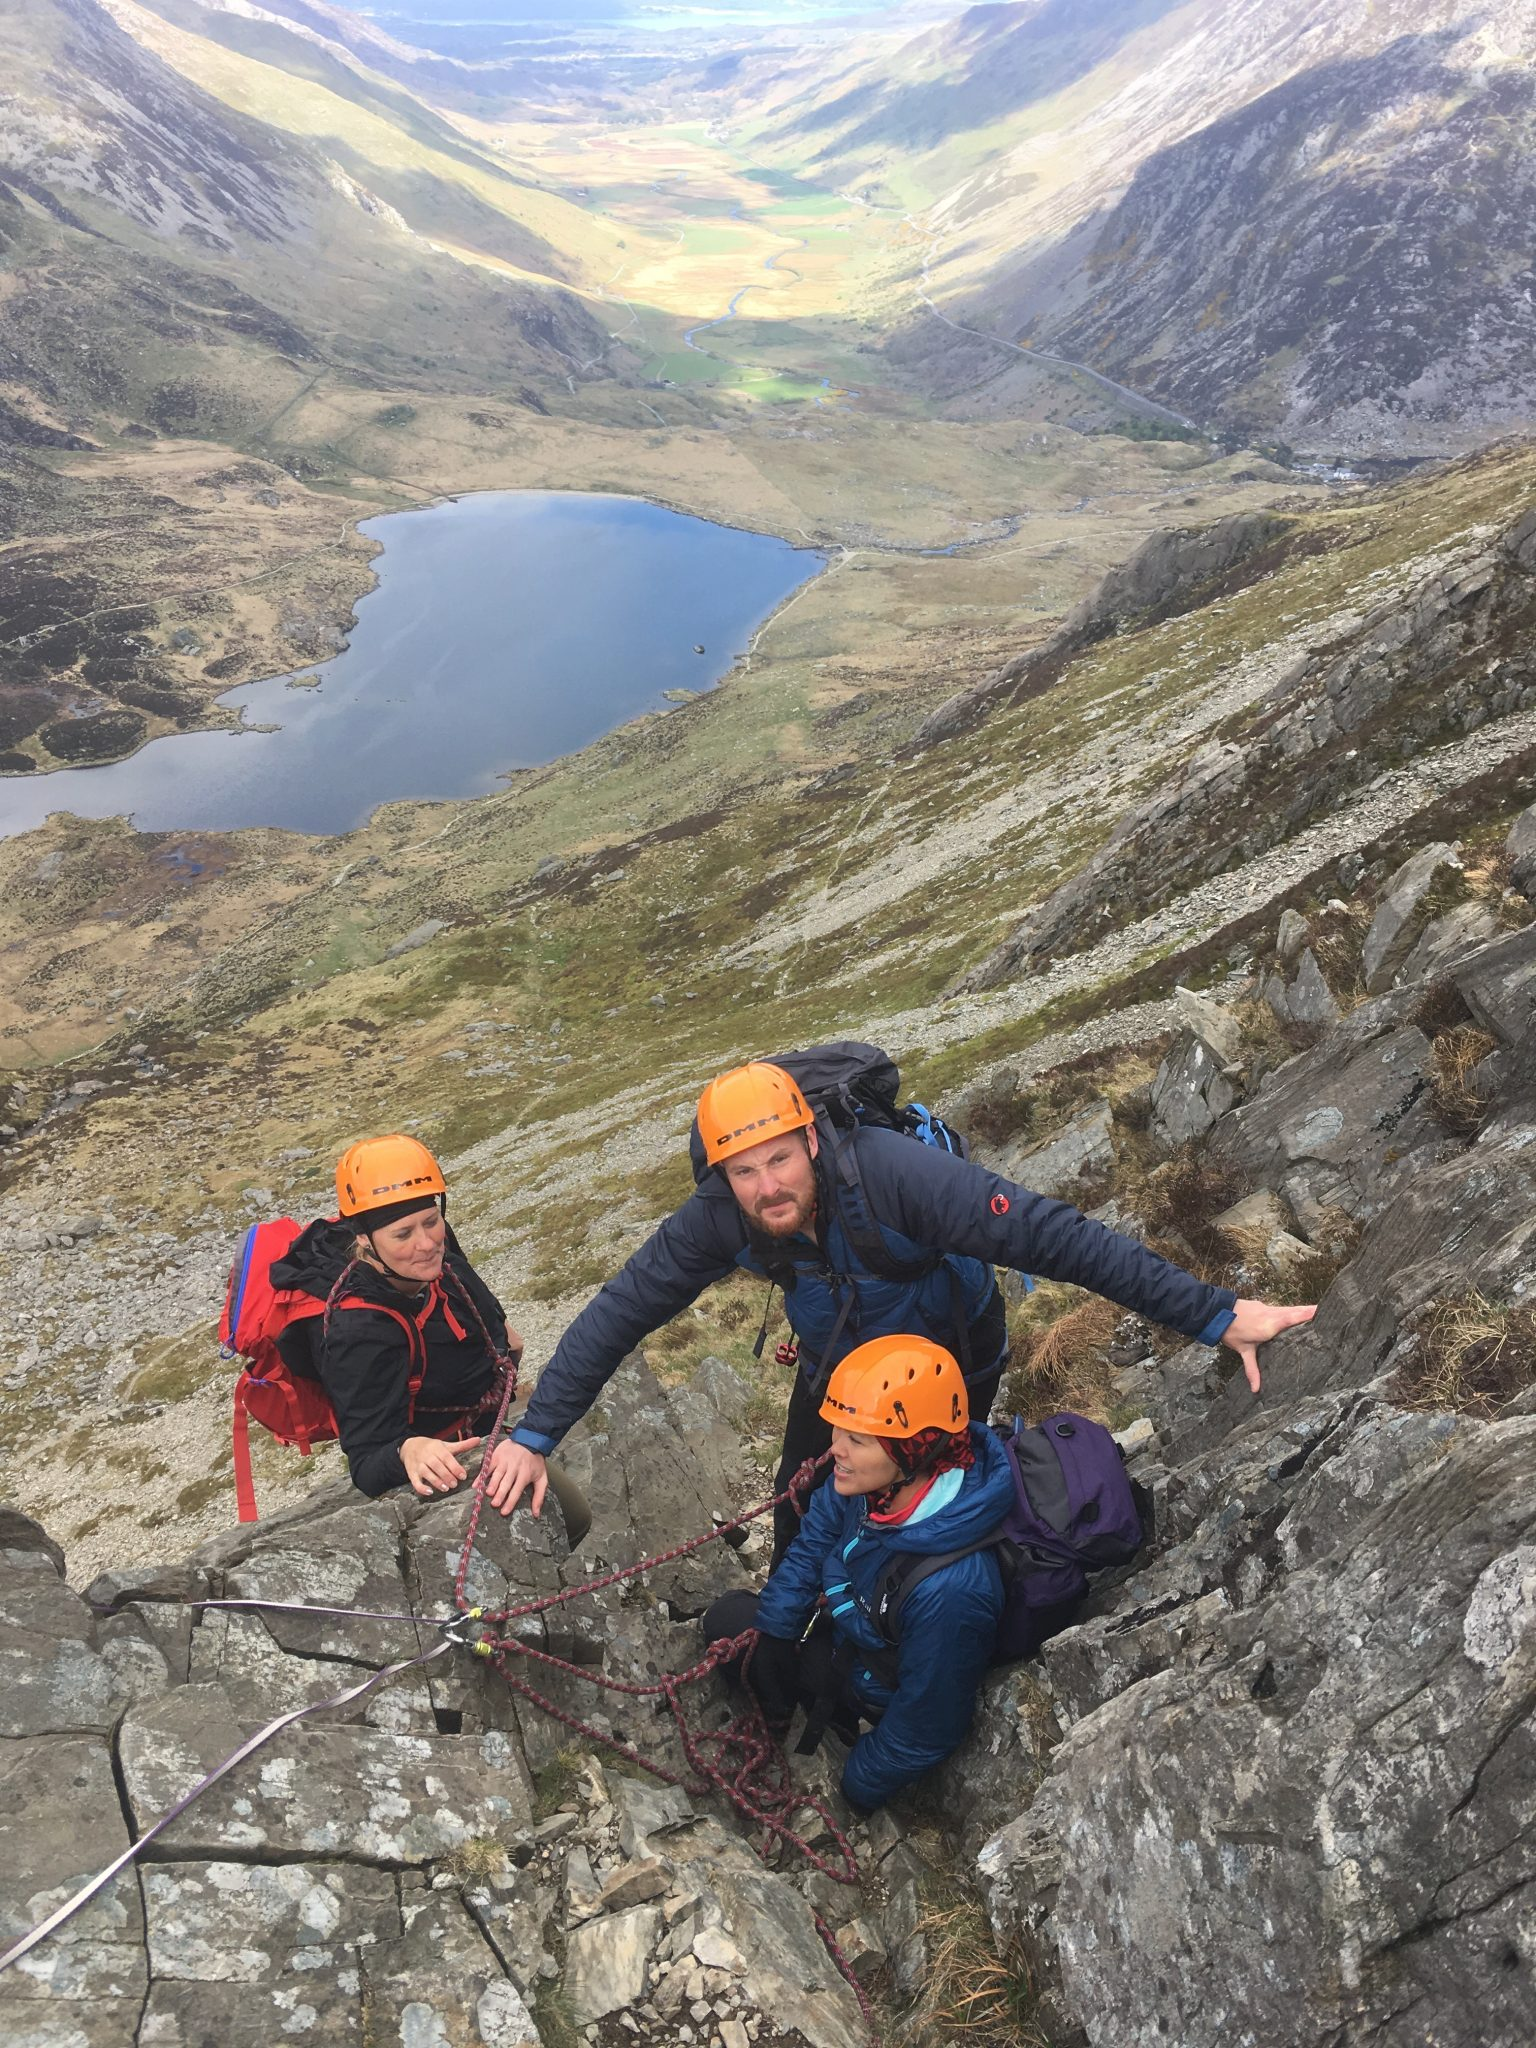 Three clients anchored safely to the rock part way up the Cneifion Arete during a learn to lead scrambling course in Snowdonia (also available in the Lake District and Scotland - Glencoe and Ben Nevis)